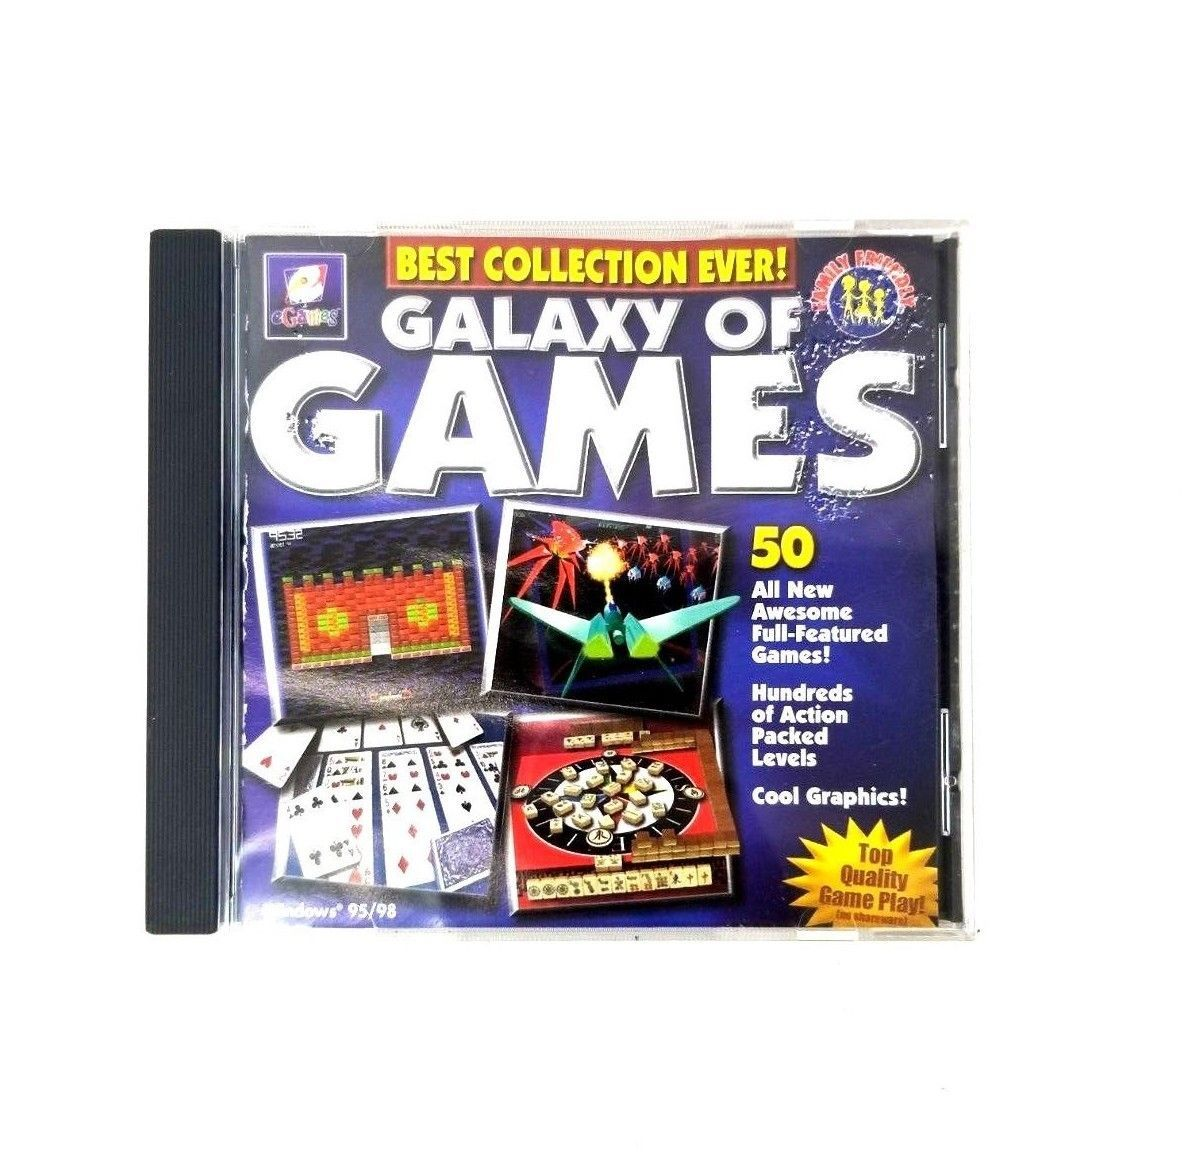 e Games Galaxy Of Games PC CD Rom 50 Games 1 Disk Various Category Games e Games